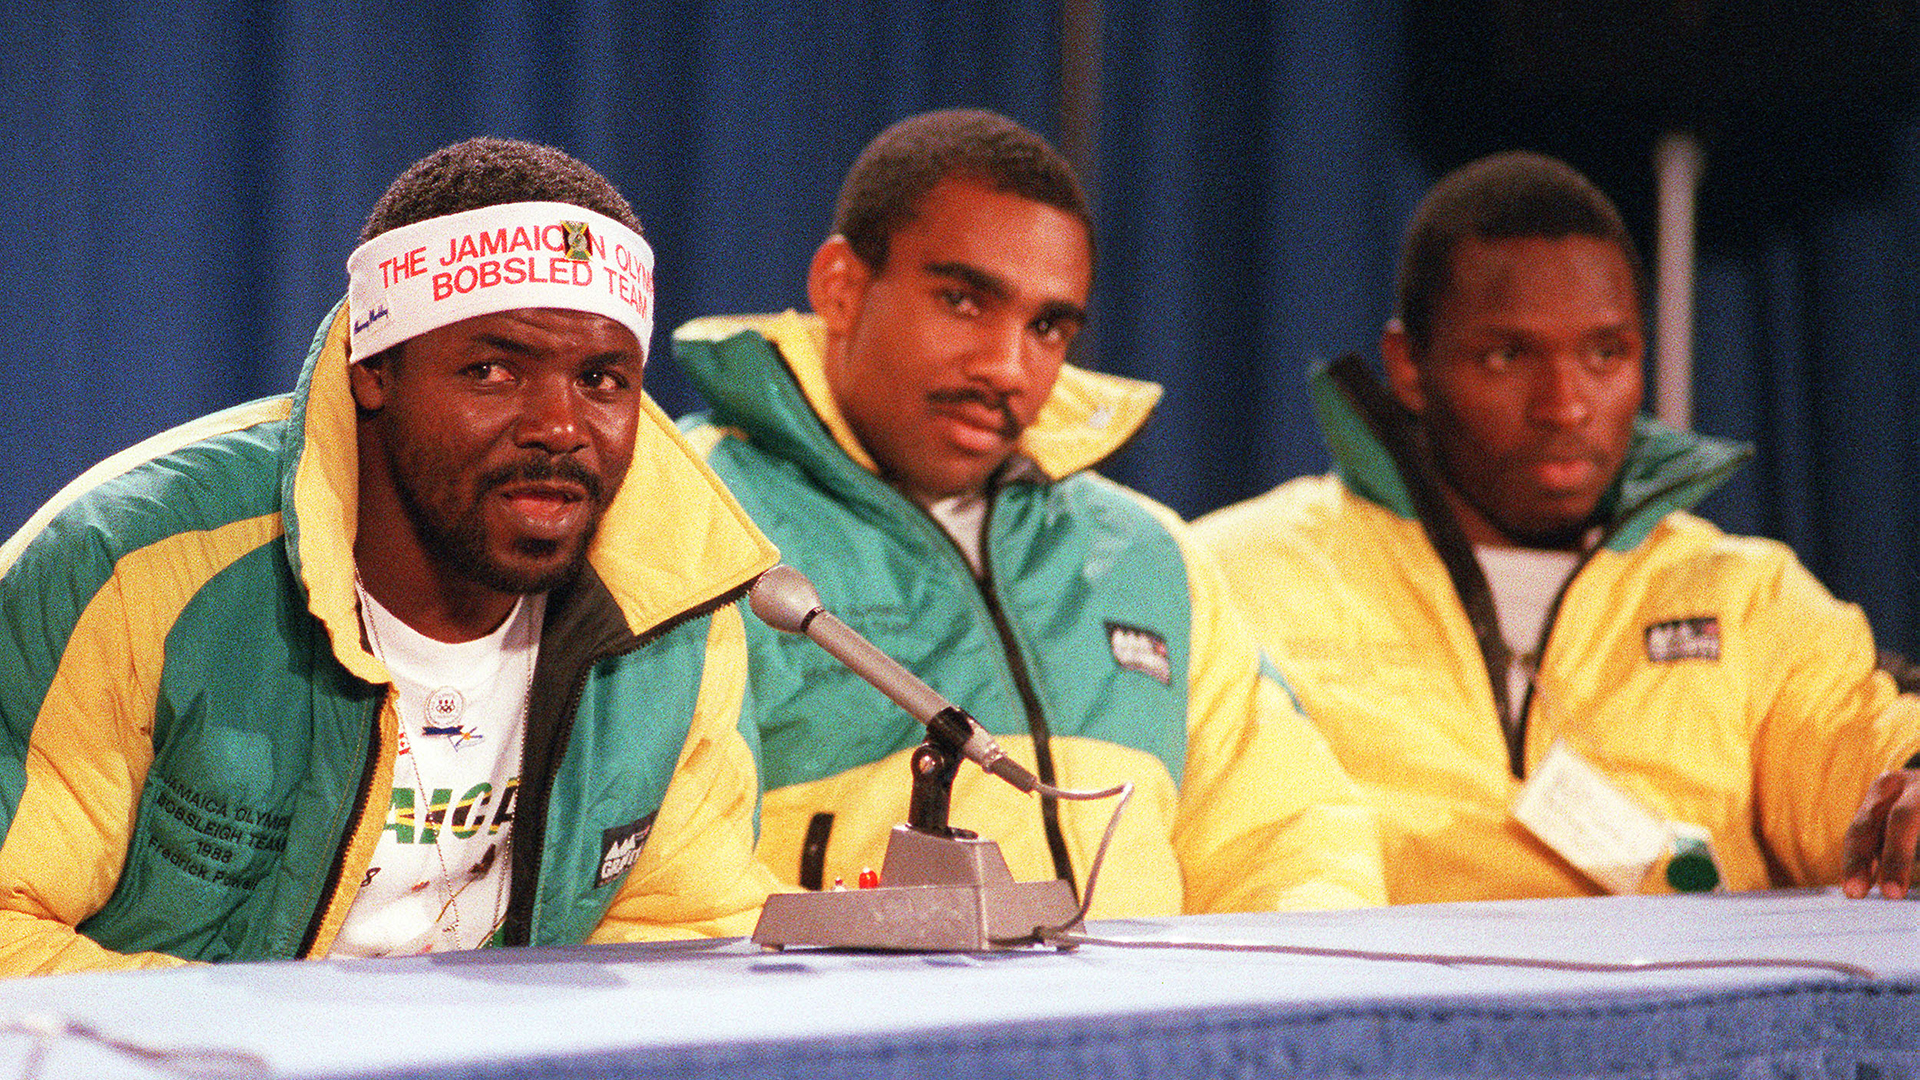 Jamaican Bobsled Team Reflects On Unlikely Journey To 88 Olympics